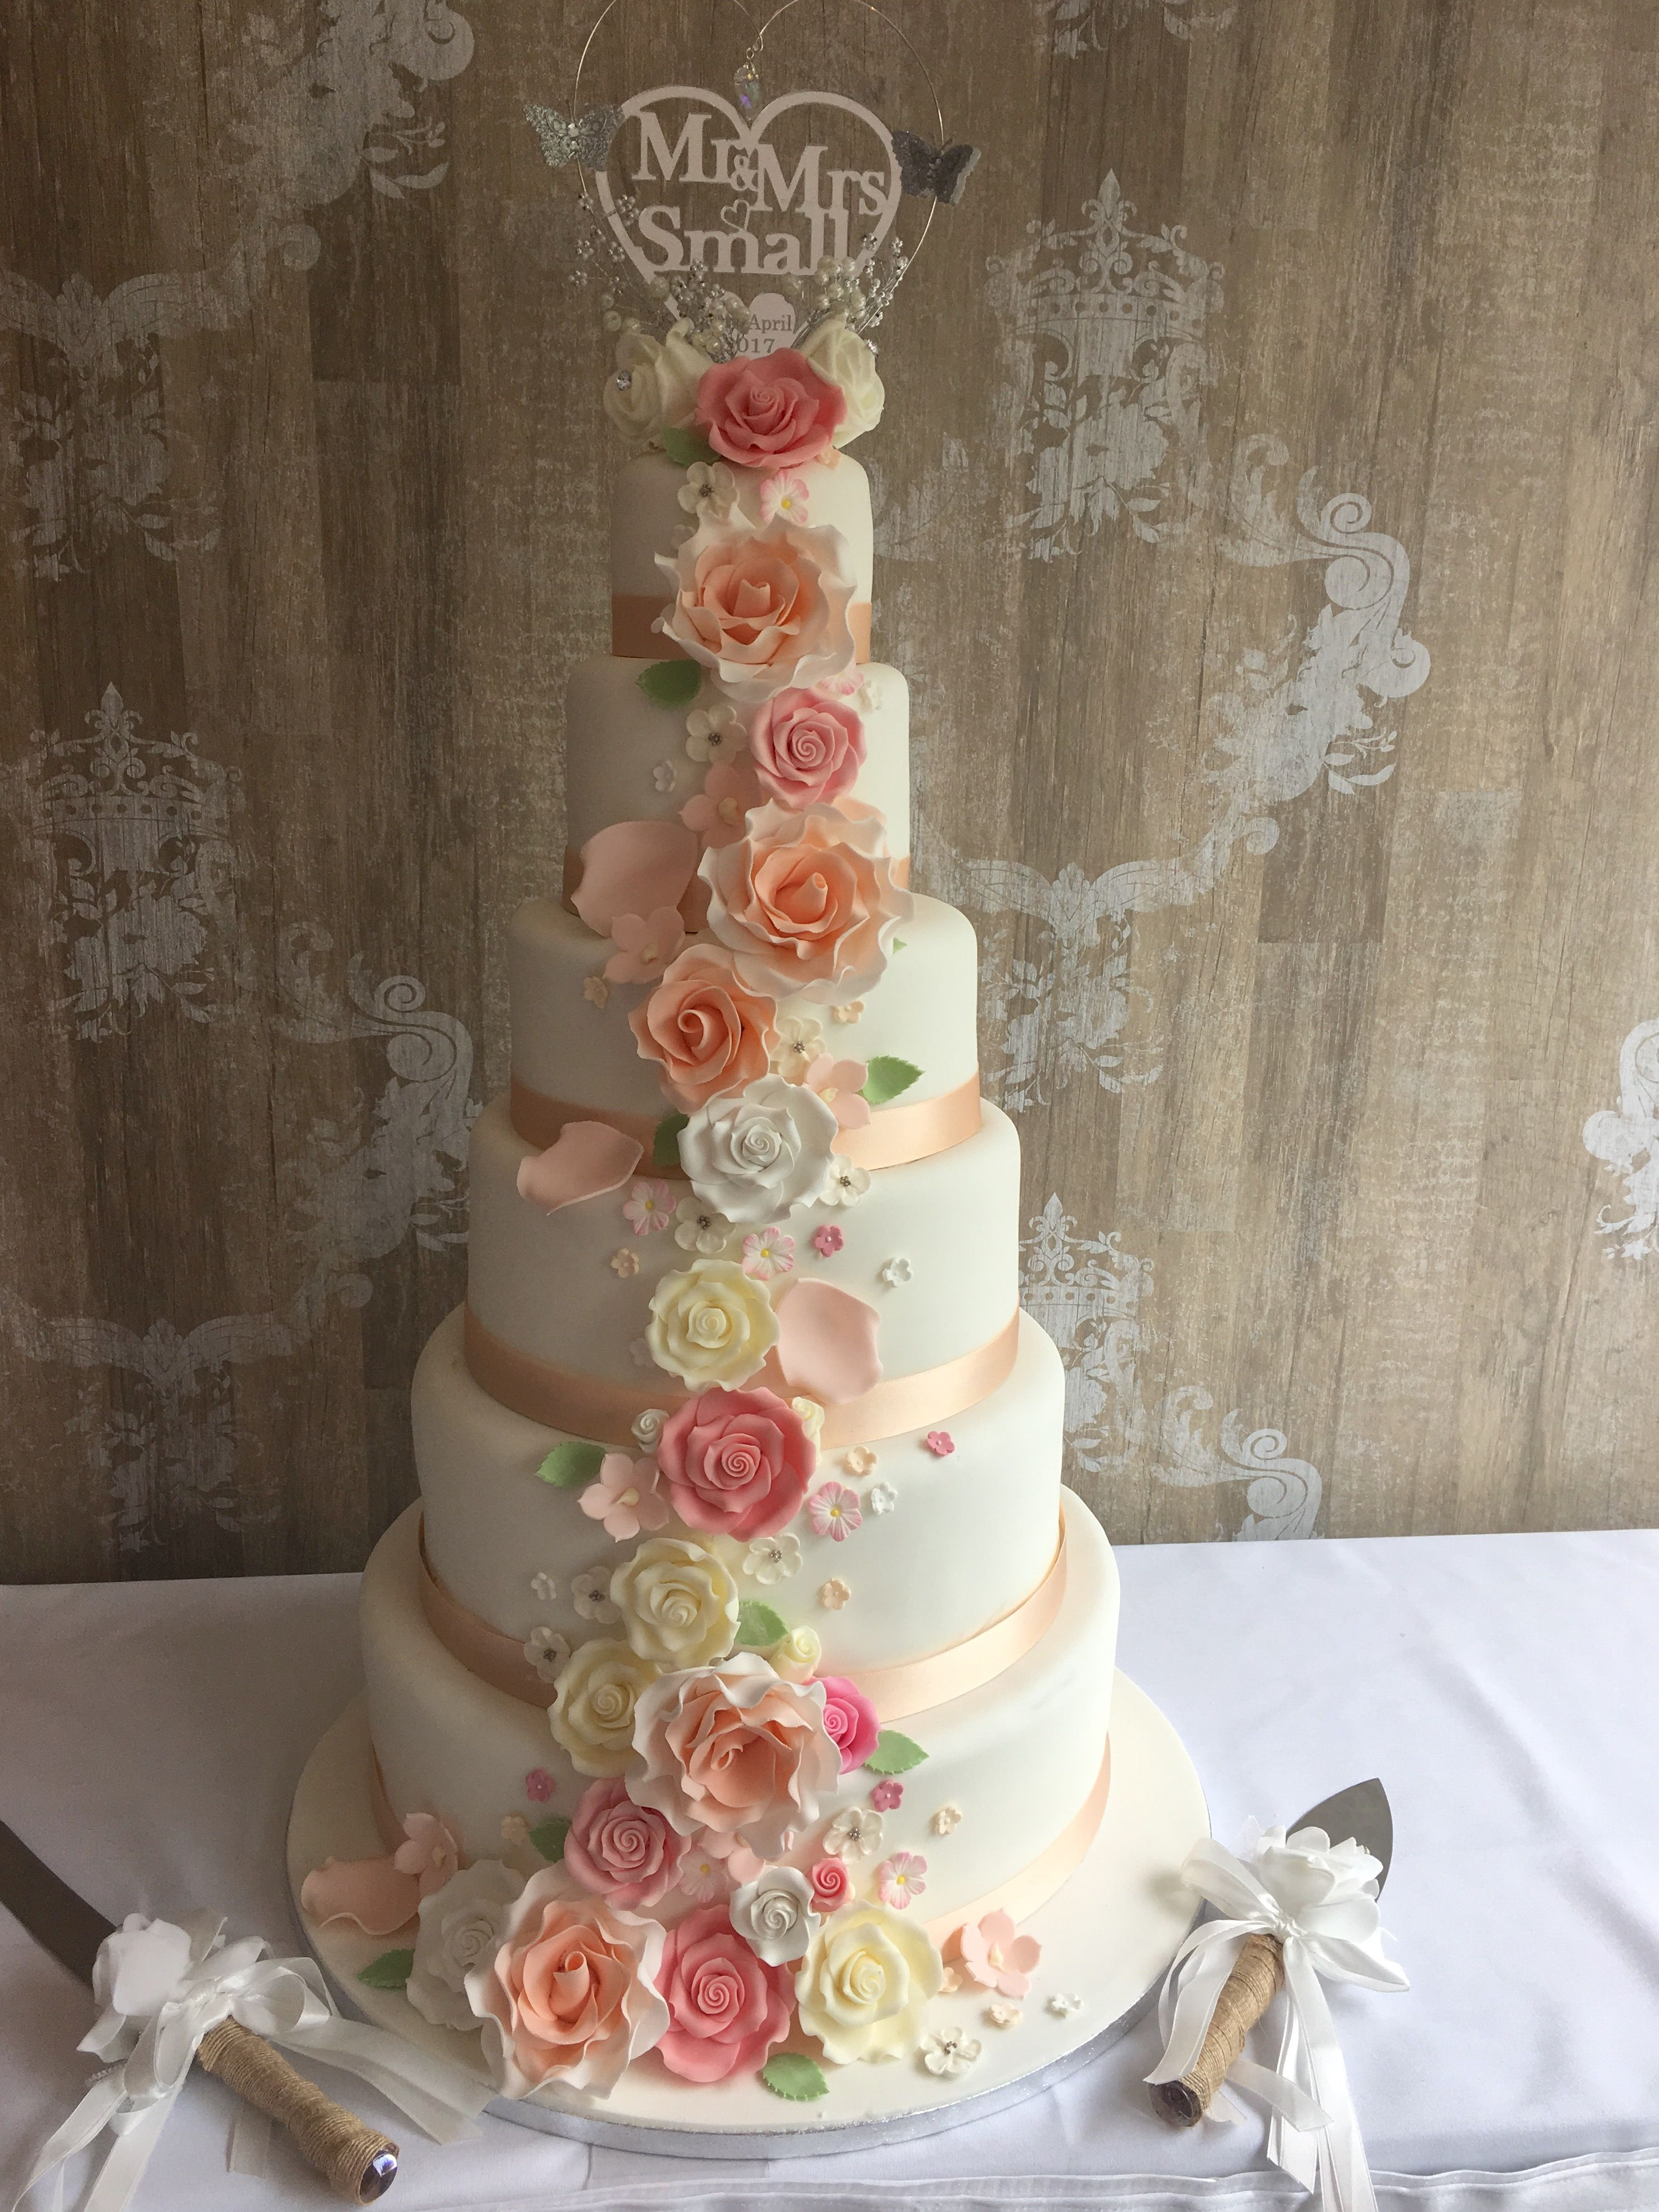 Vintage Edible Roses Peach And Pink Tall Giant Wedding Cake Wedding Cake Pictures Cake Edible Roses